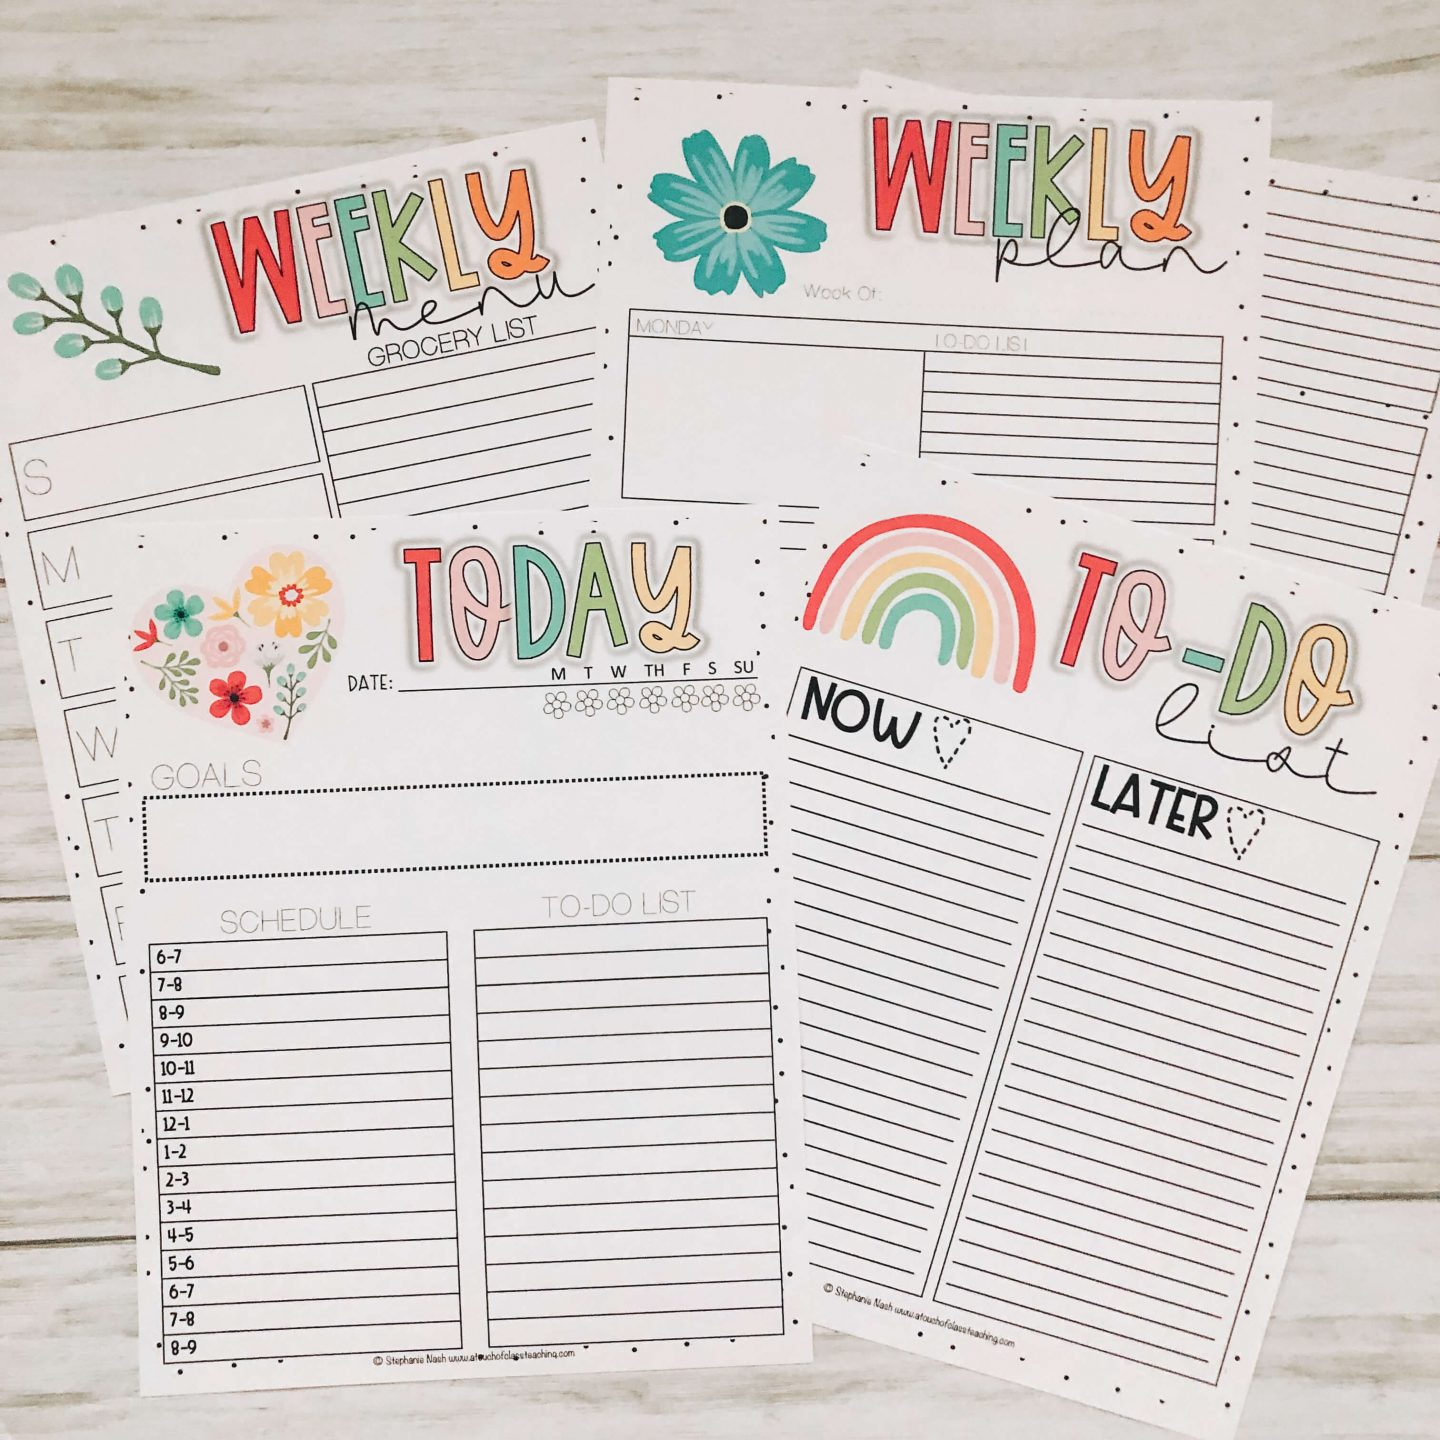 Tips for time management for teachers includes using a to-do list for everyday tasks.